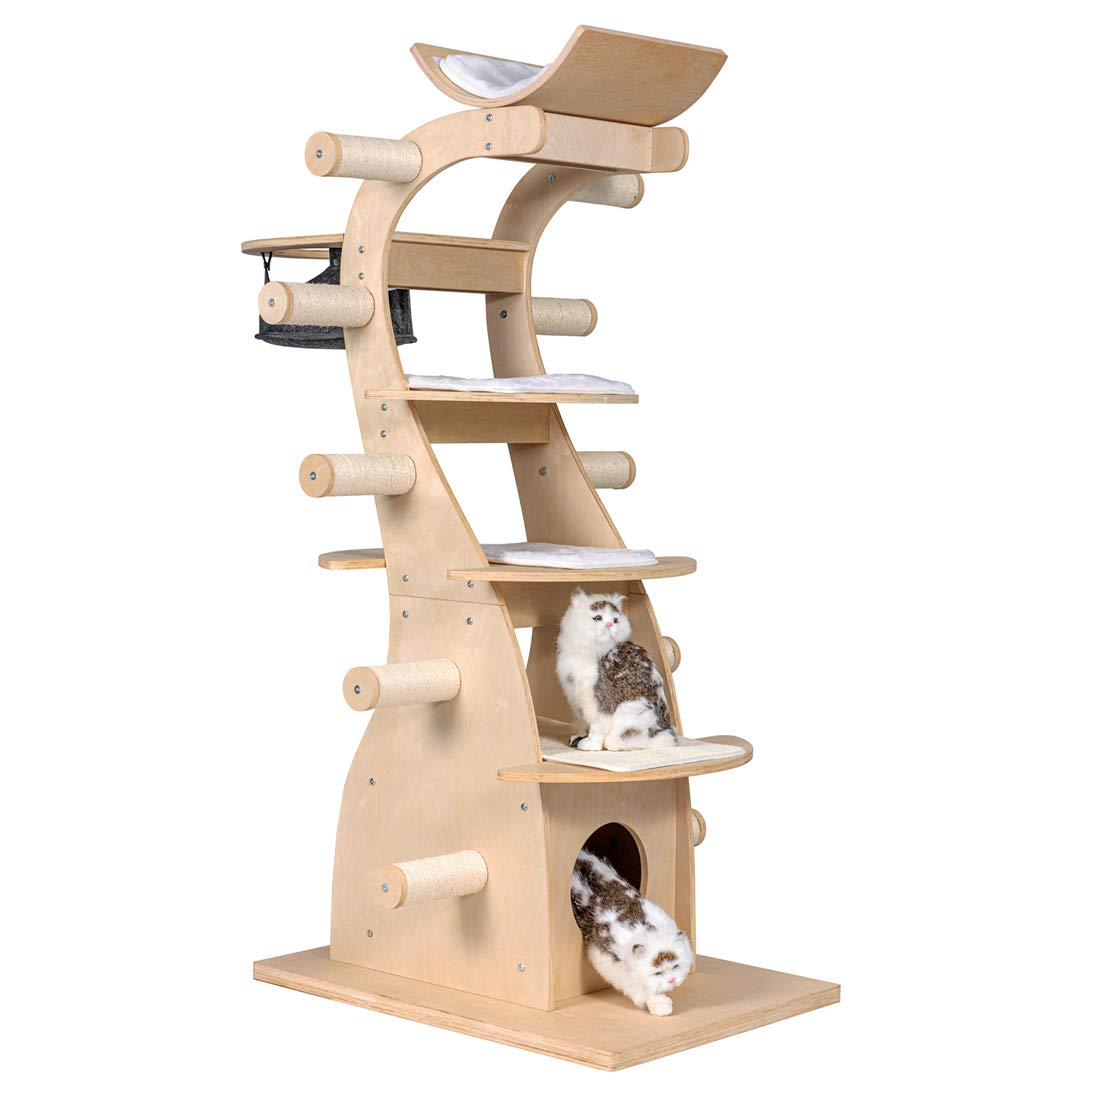 Good Life Usa Deluxe Modern Design Cat Tree House With Scratching Post Tower Deluxe Solid Wood Furniture Fur Kiddos